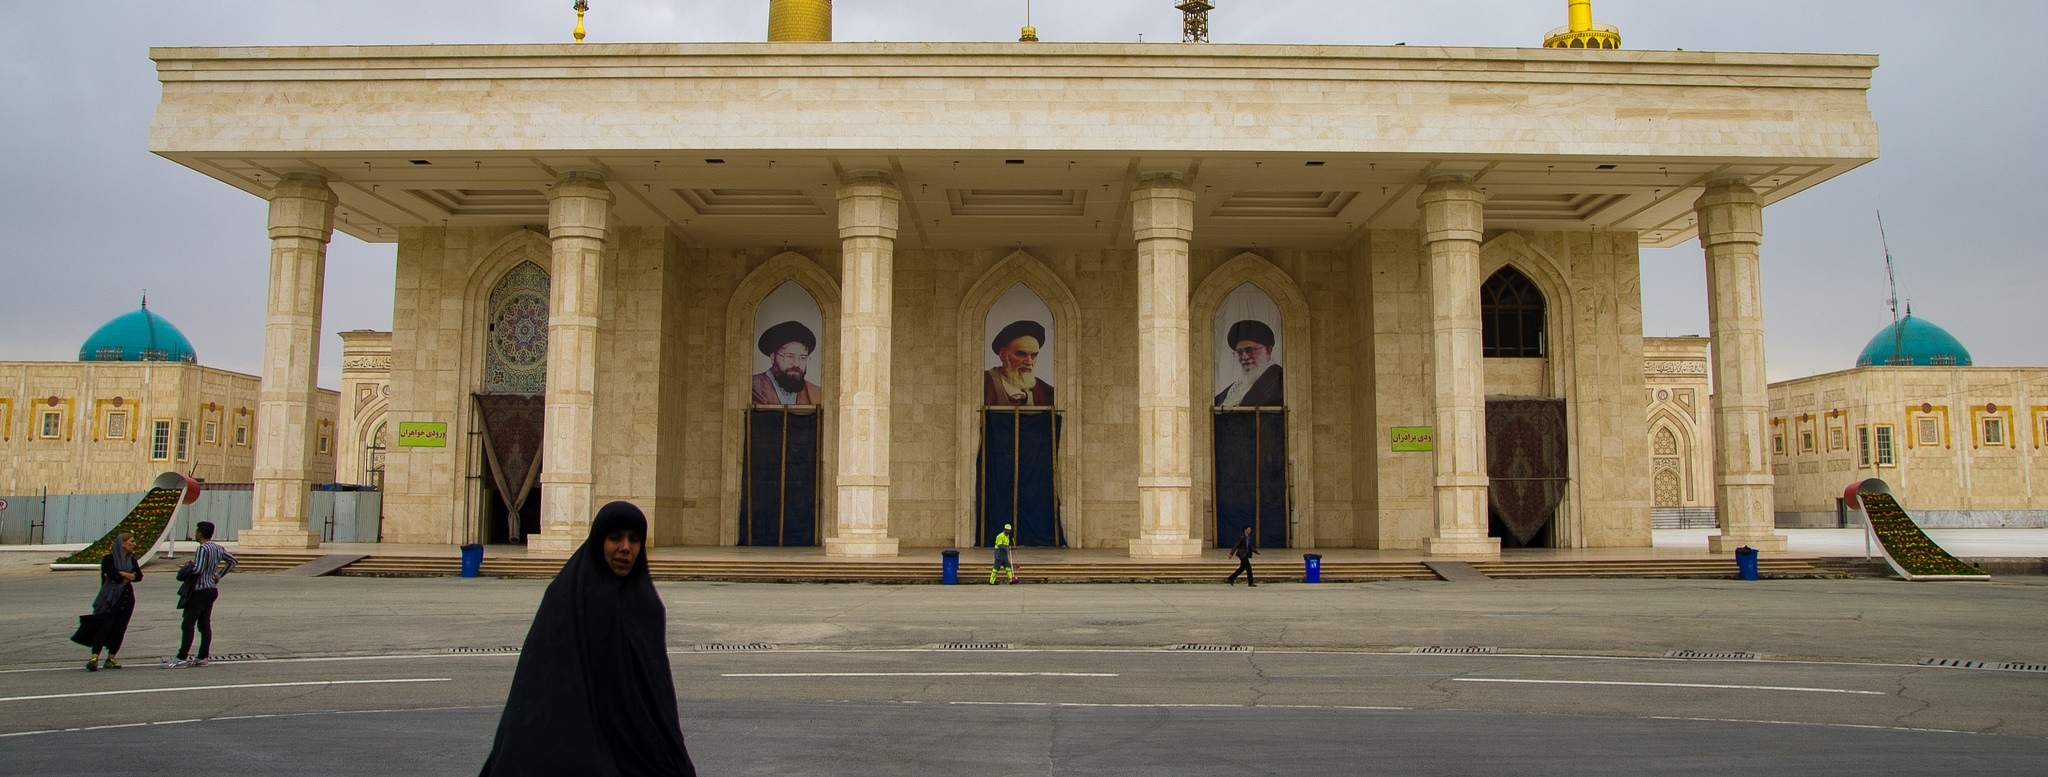 The entrance of the mausoleum of Ayatollah Khomeini, founder of the Islamic Republic of Iran. (Flickr/Gilbert Sopakuwa)